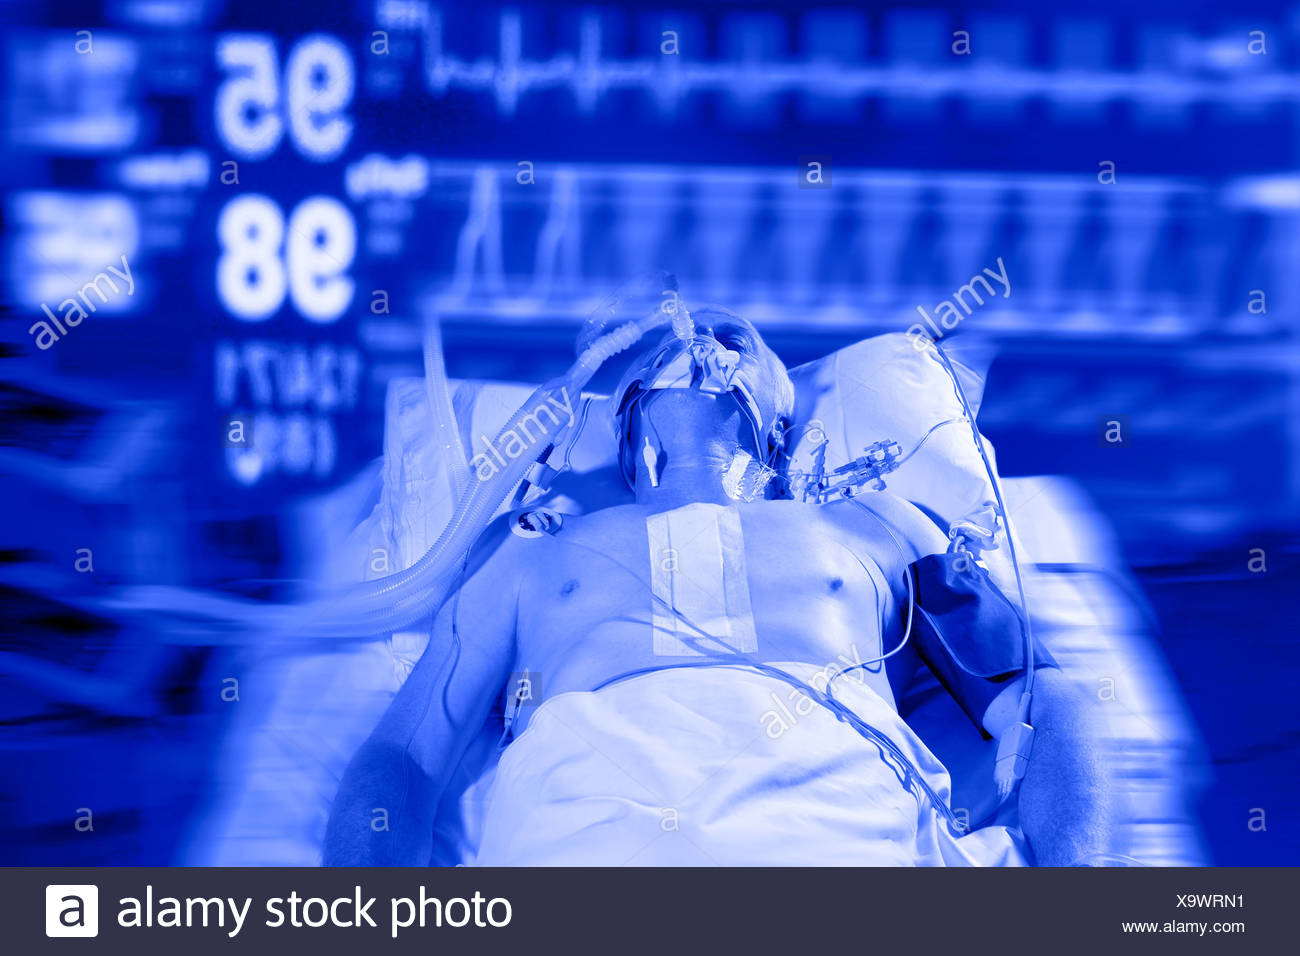 MODEL RELEASED Intensive care patient - Stock Image